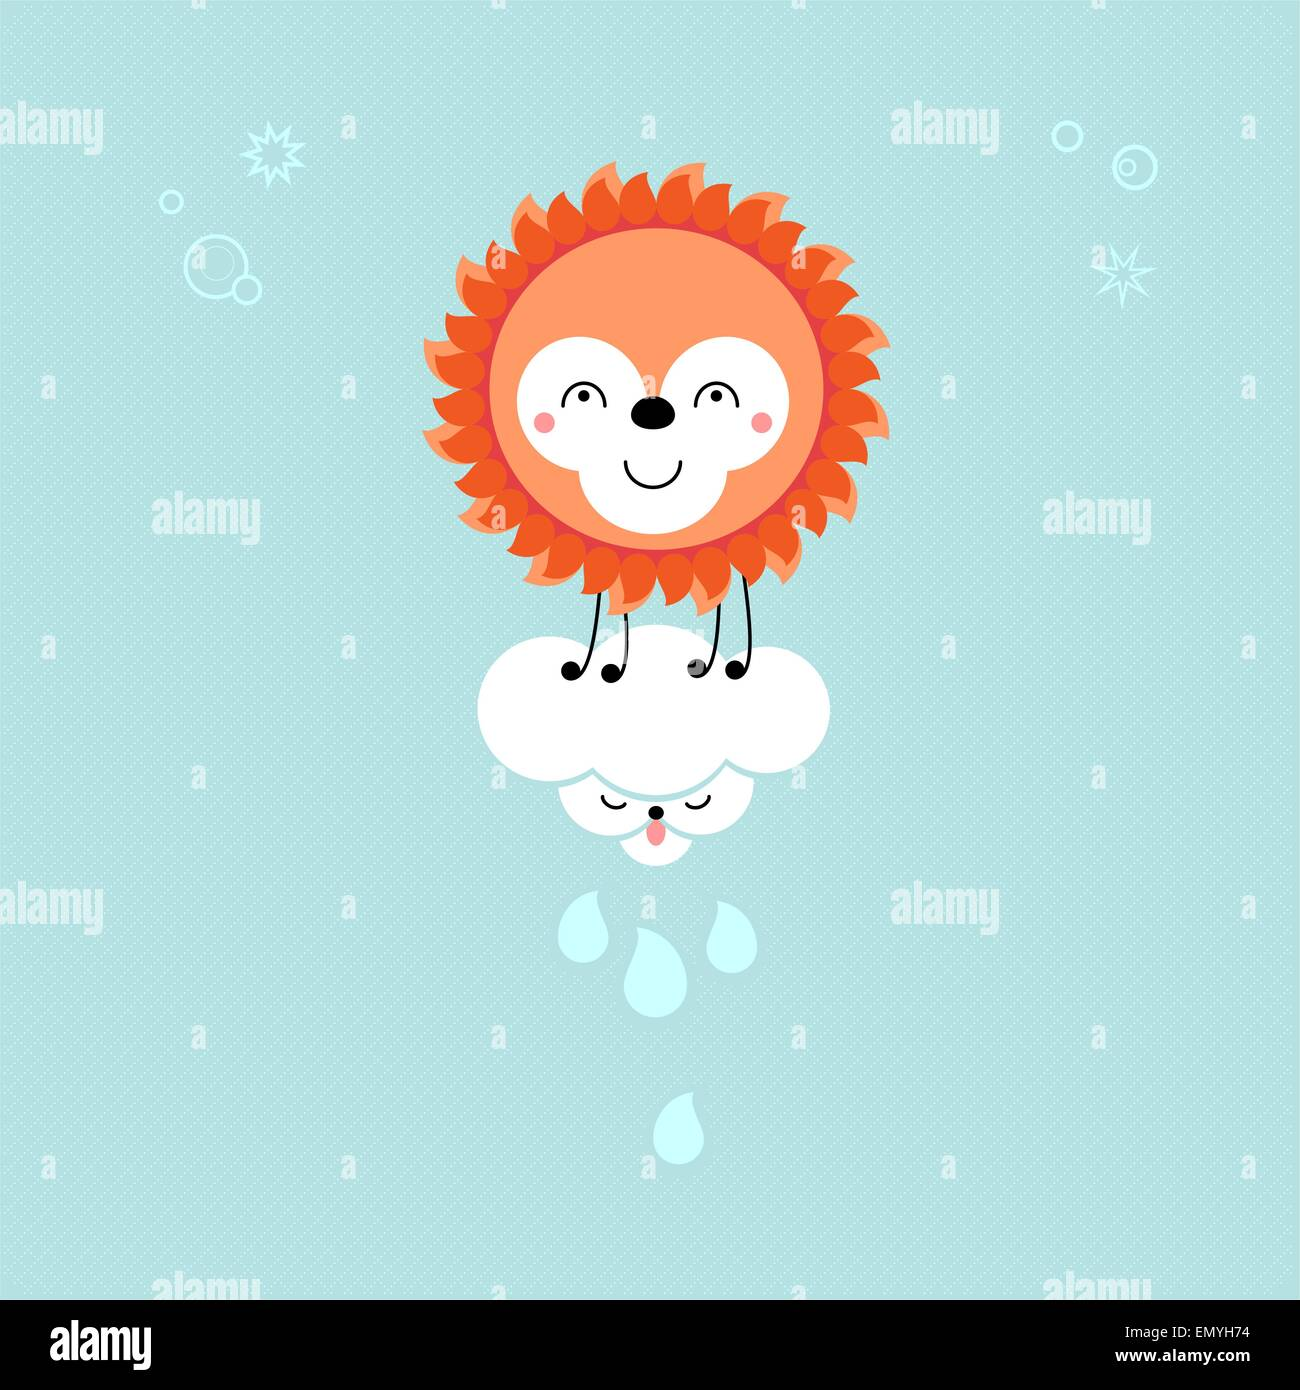 Sonne Bilder Comic Sonne Und Wolke Am Himmel Cute Kawaii Animalische Comic Figuren